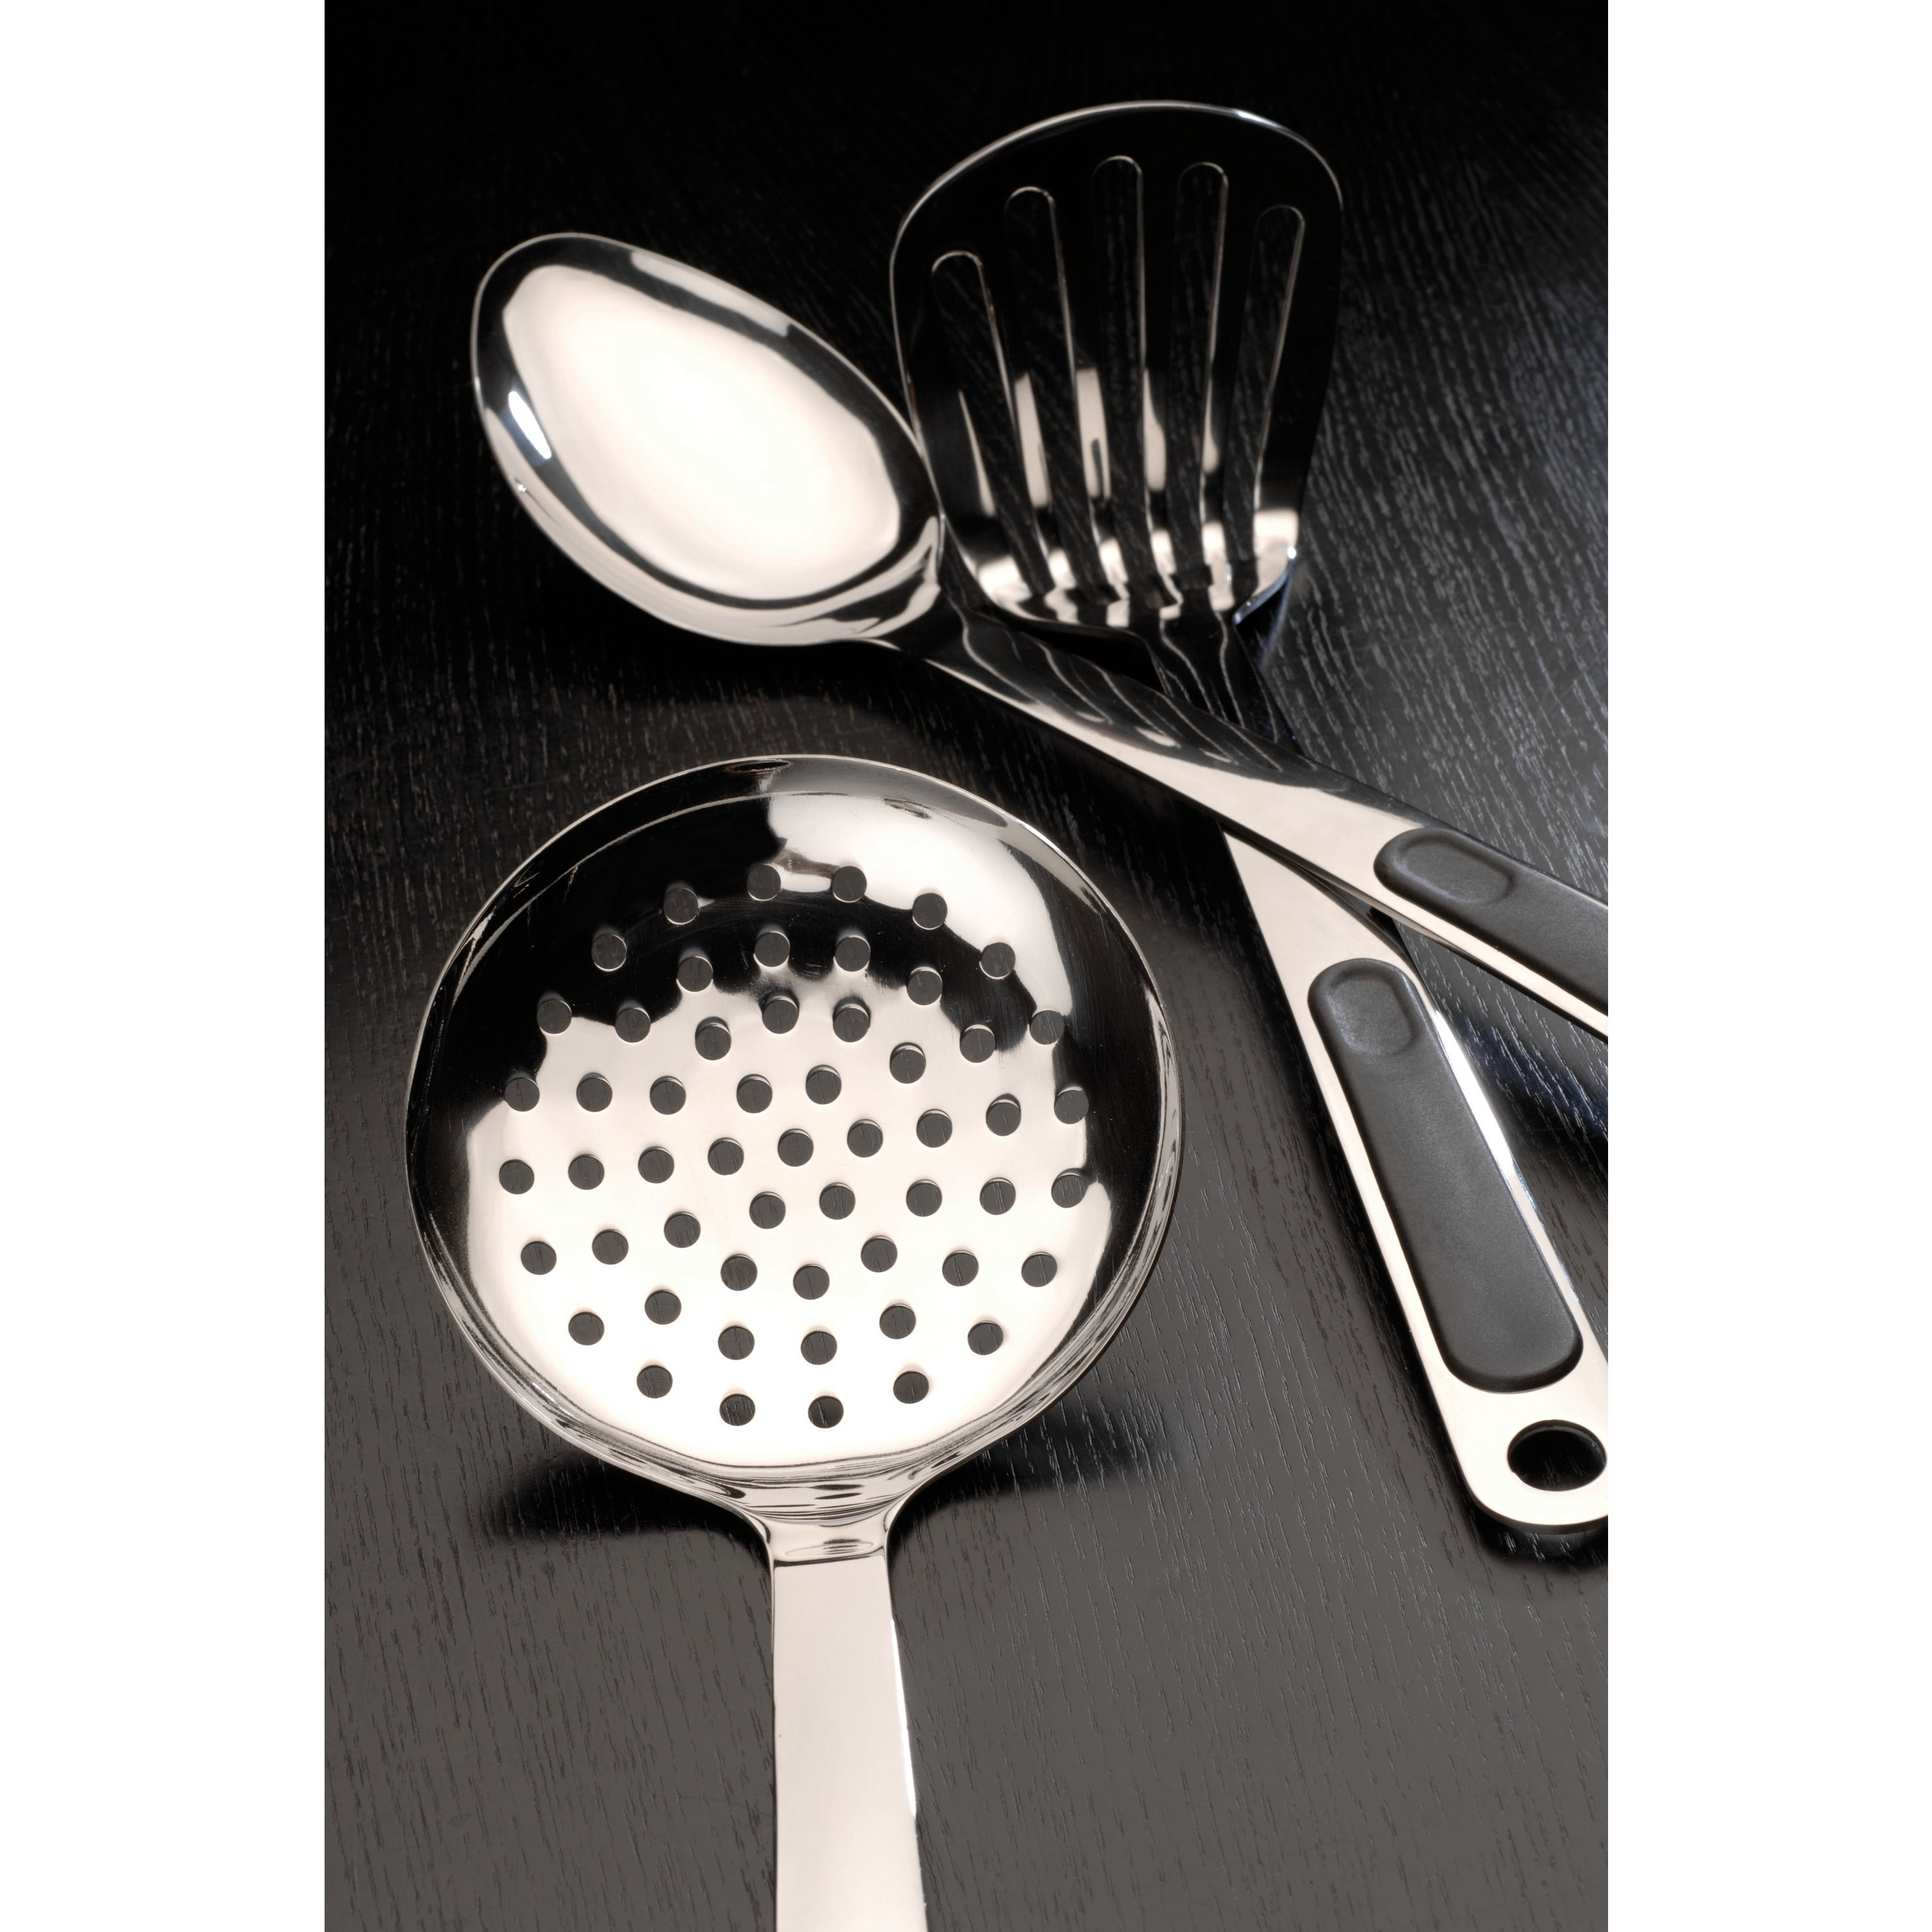 Ergo 7 Piece Kitchen Utensils Free Shipping Today 17756473